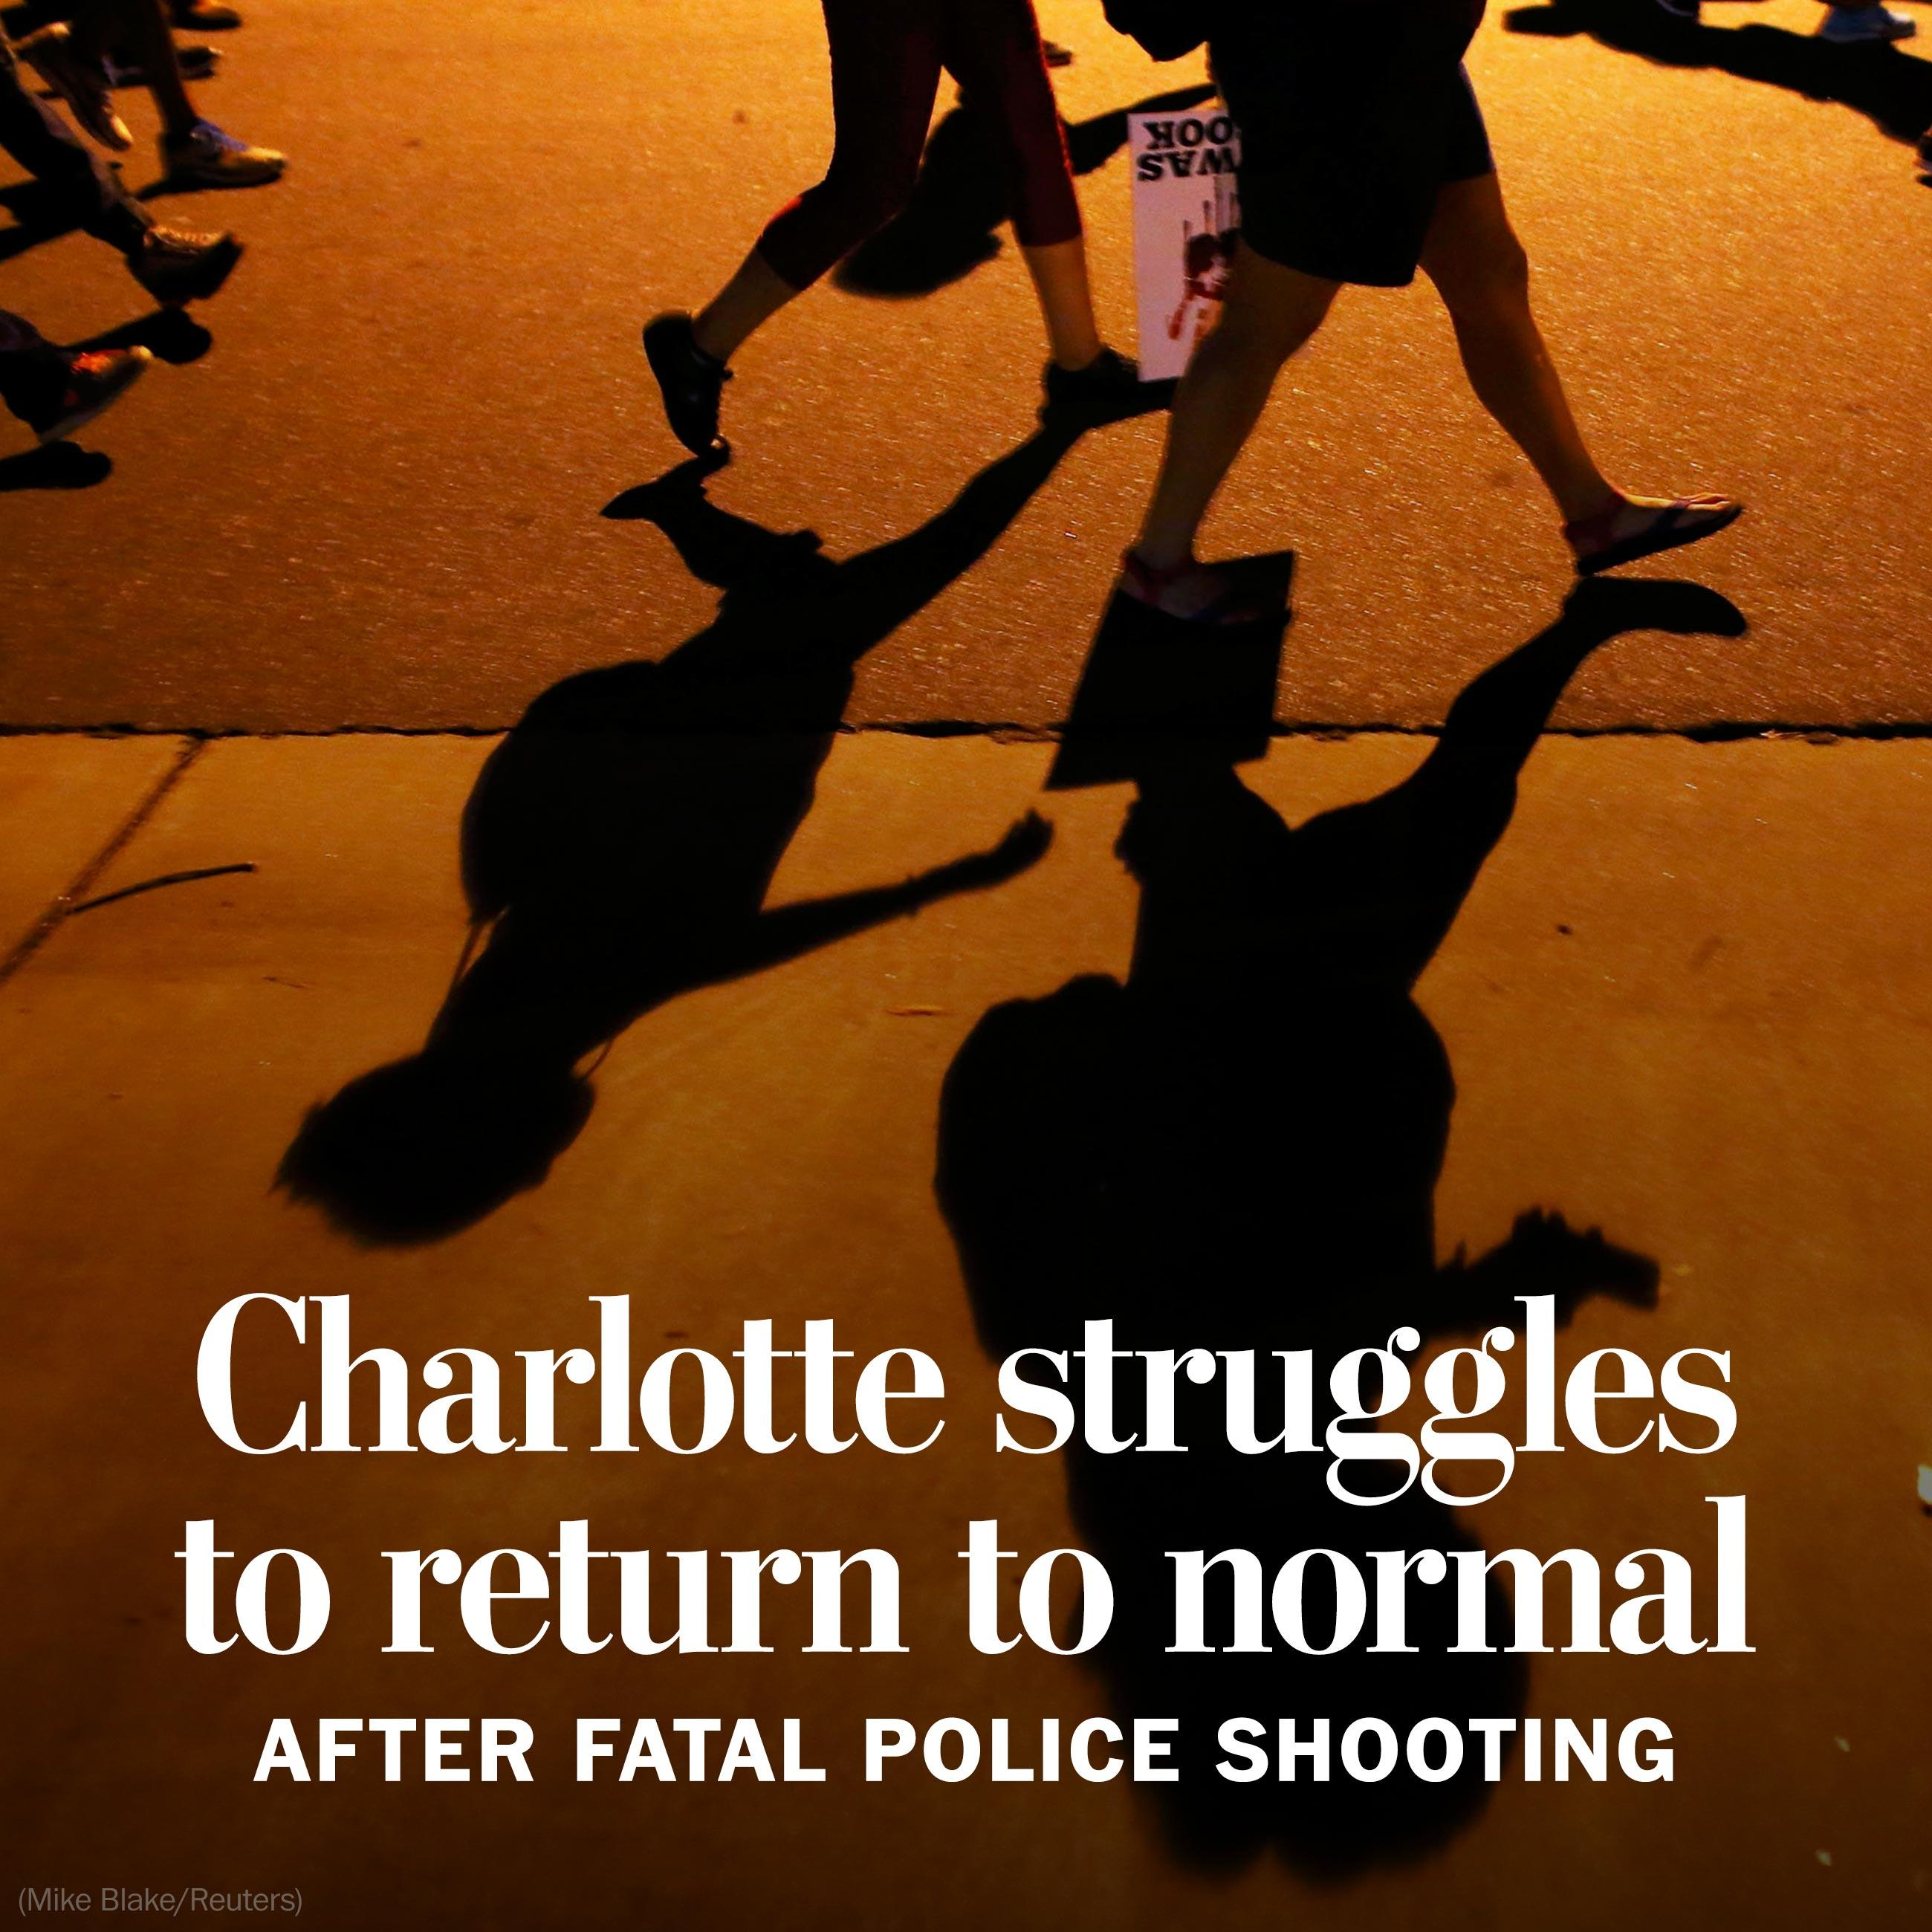 Charlotte struggles to return to normal after fatal police shooting